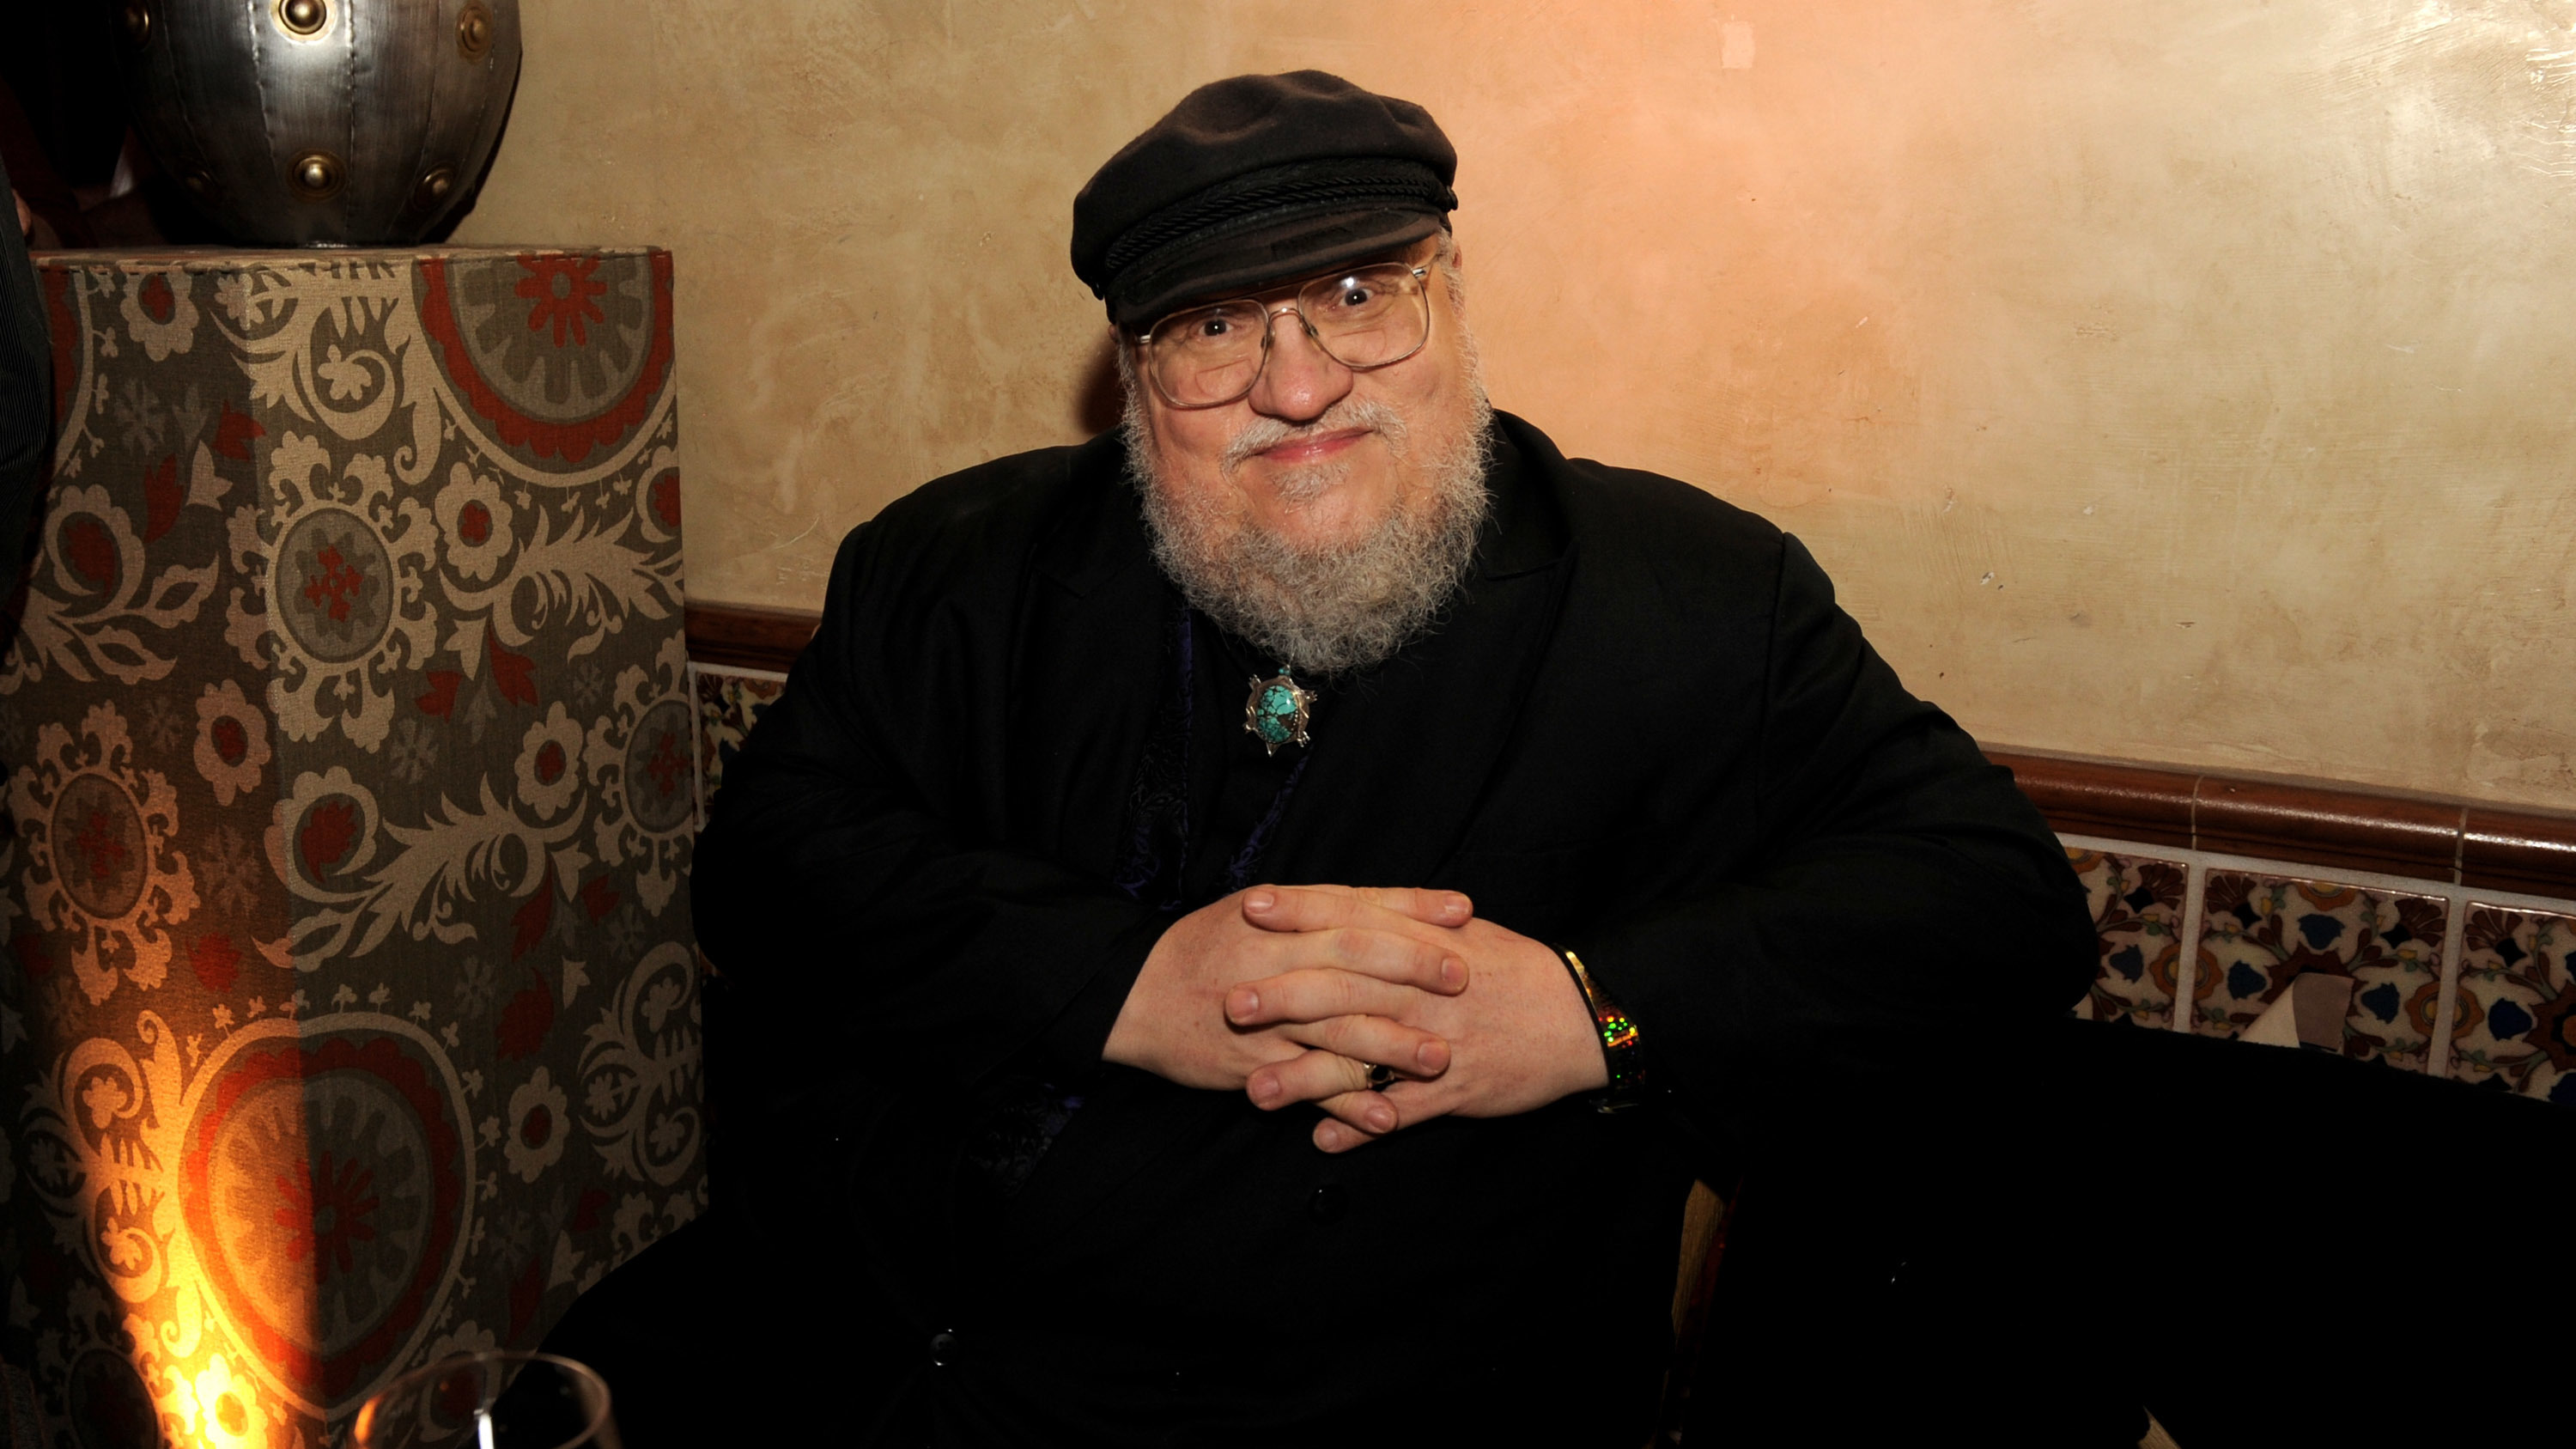 George R.R. Martin Really Does Know You Want Him To Write Faster